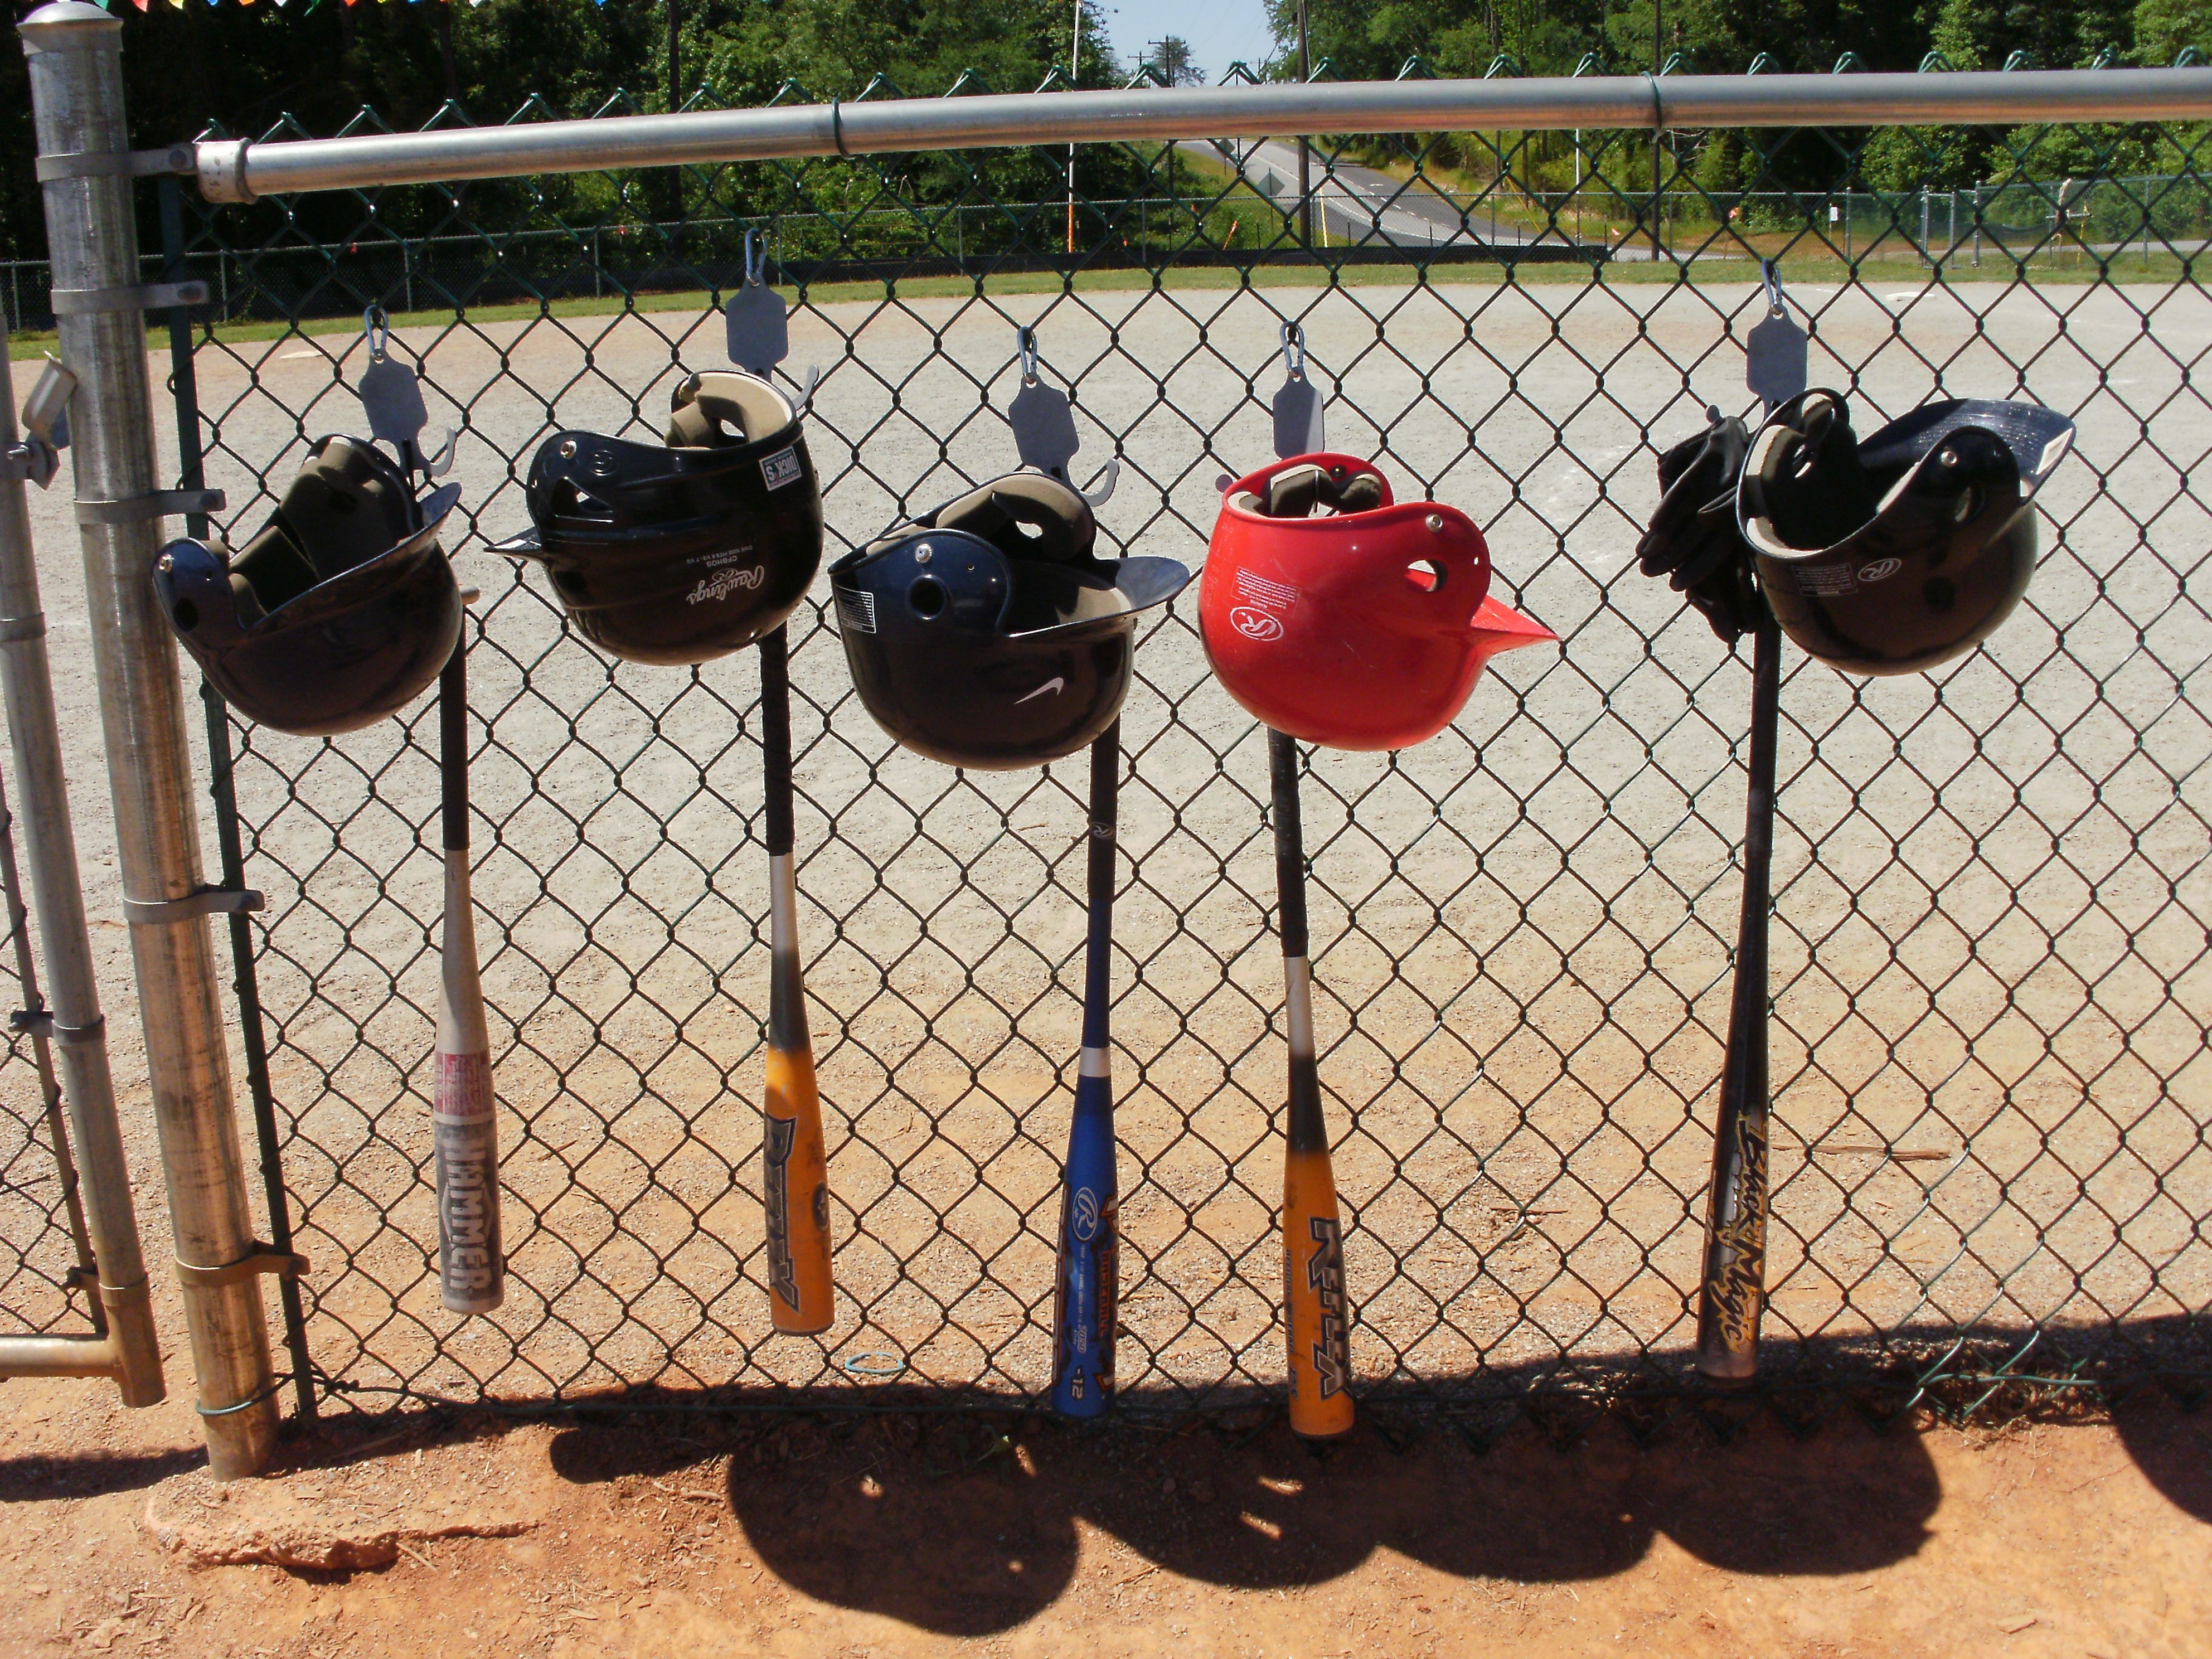 Best ideas about DIY Dugout Organizer . Save or Pin Google Image Result for Now.